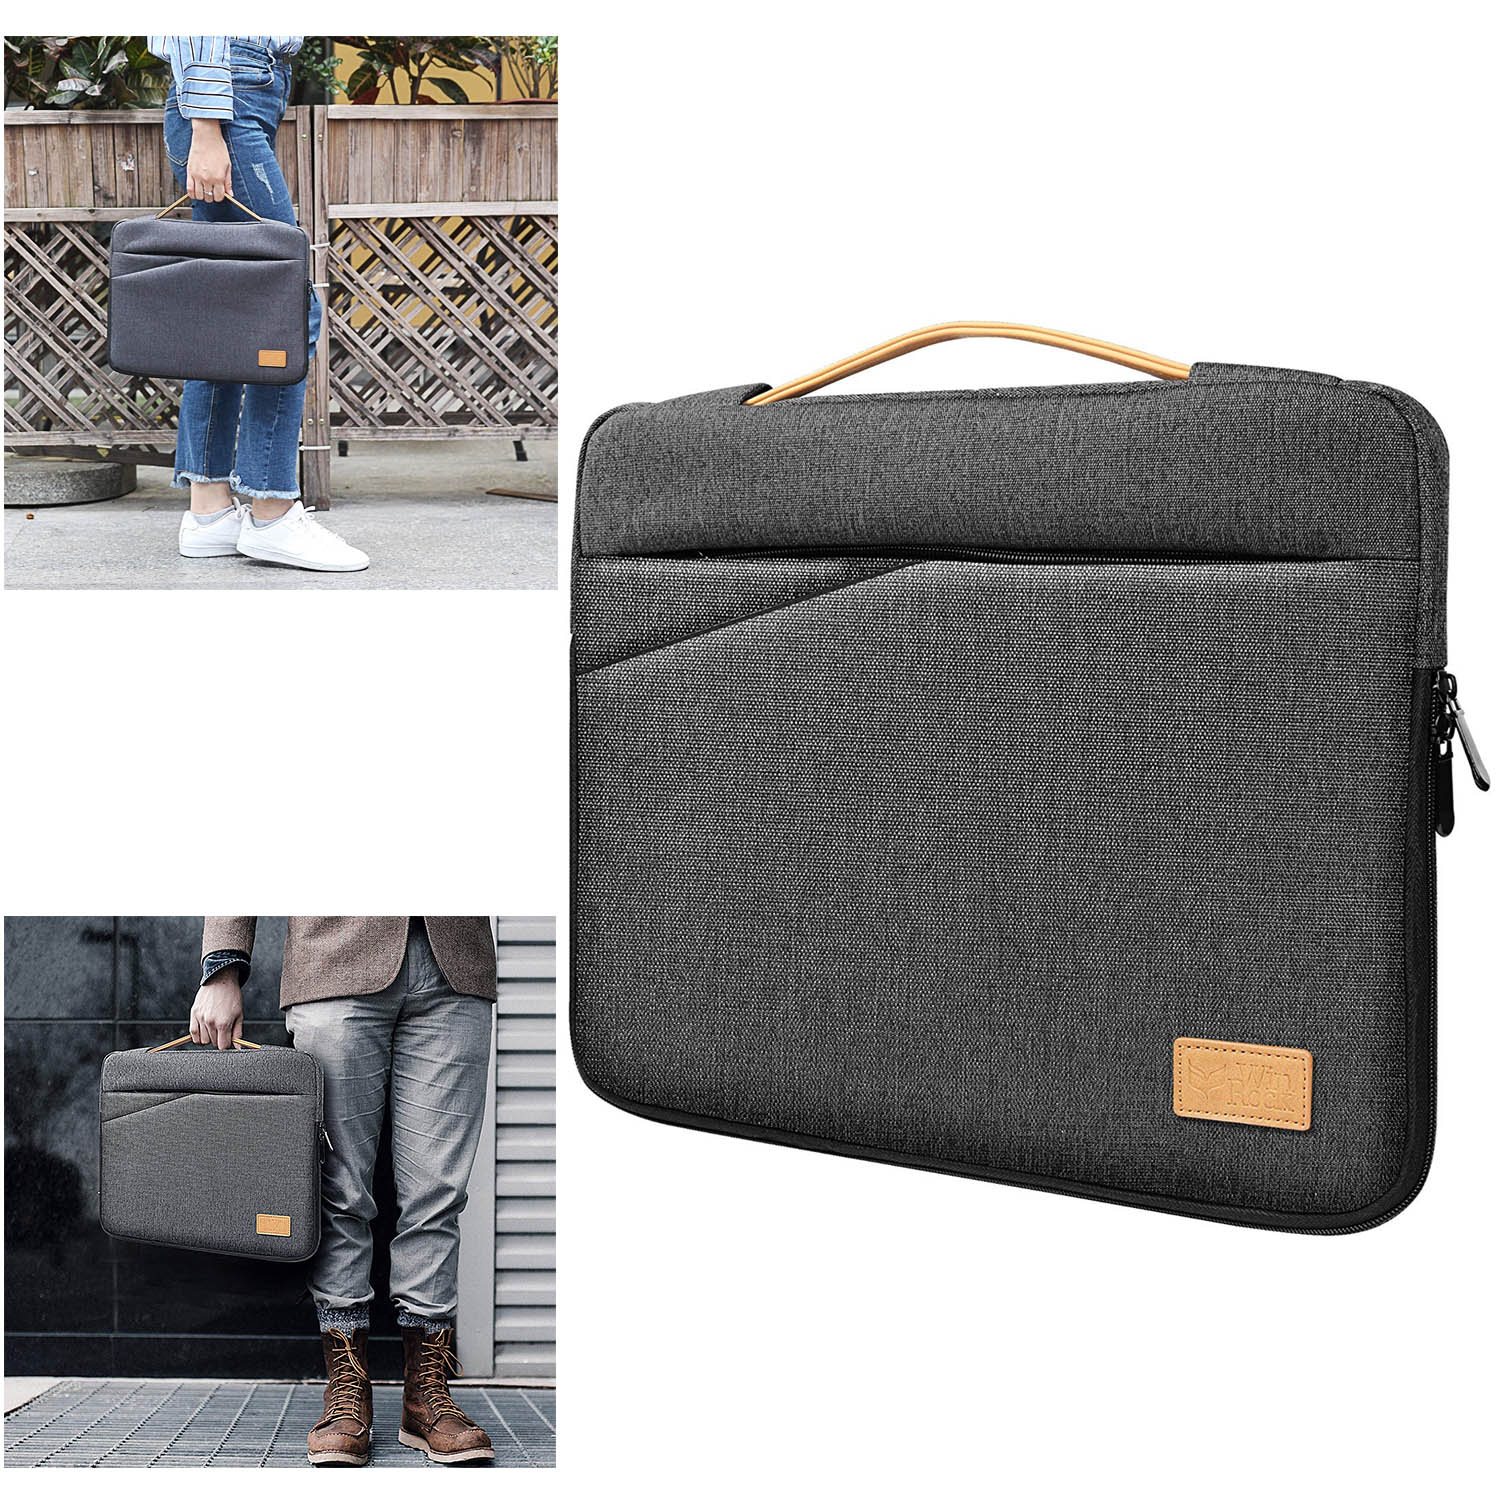 13-13.5 Inch Laptop Sleeve Case Bag for Macbook Pro/ProRetina HP Dell Acer Asus Thinkpad Laptops Notebooks Ultrabooks Tablets with Handle Spill-Resistant Carrying Case Protector Briefcase Handbag